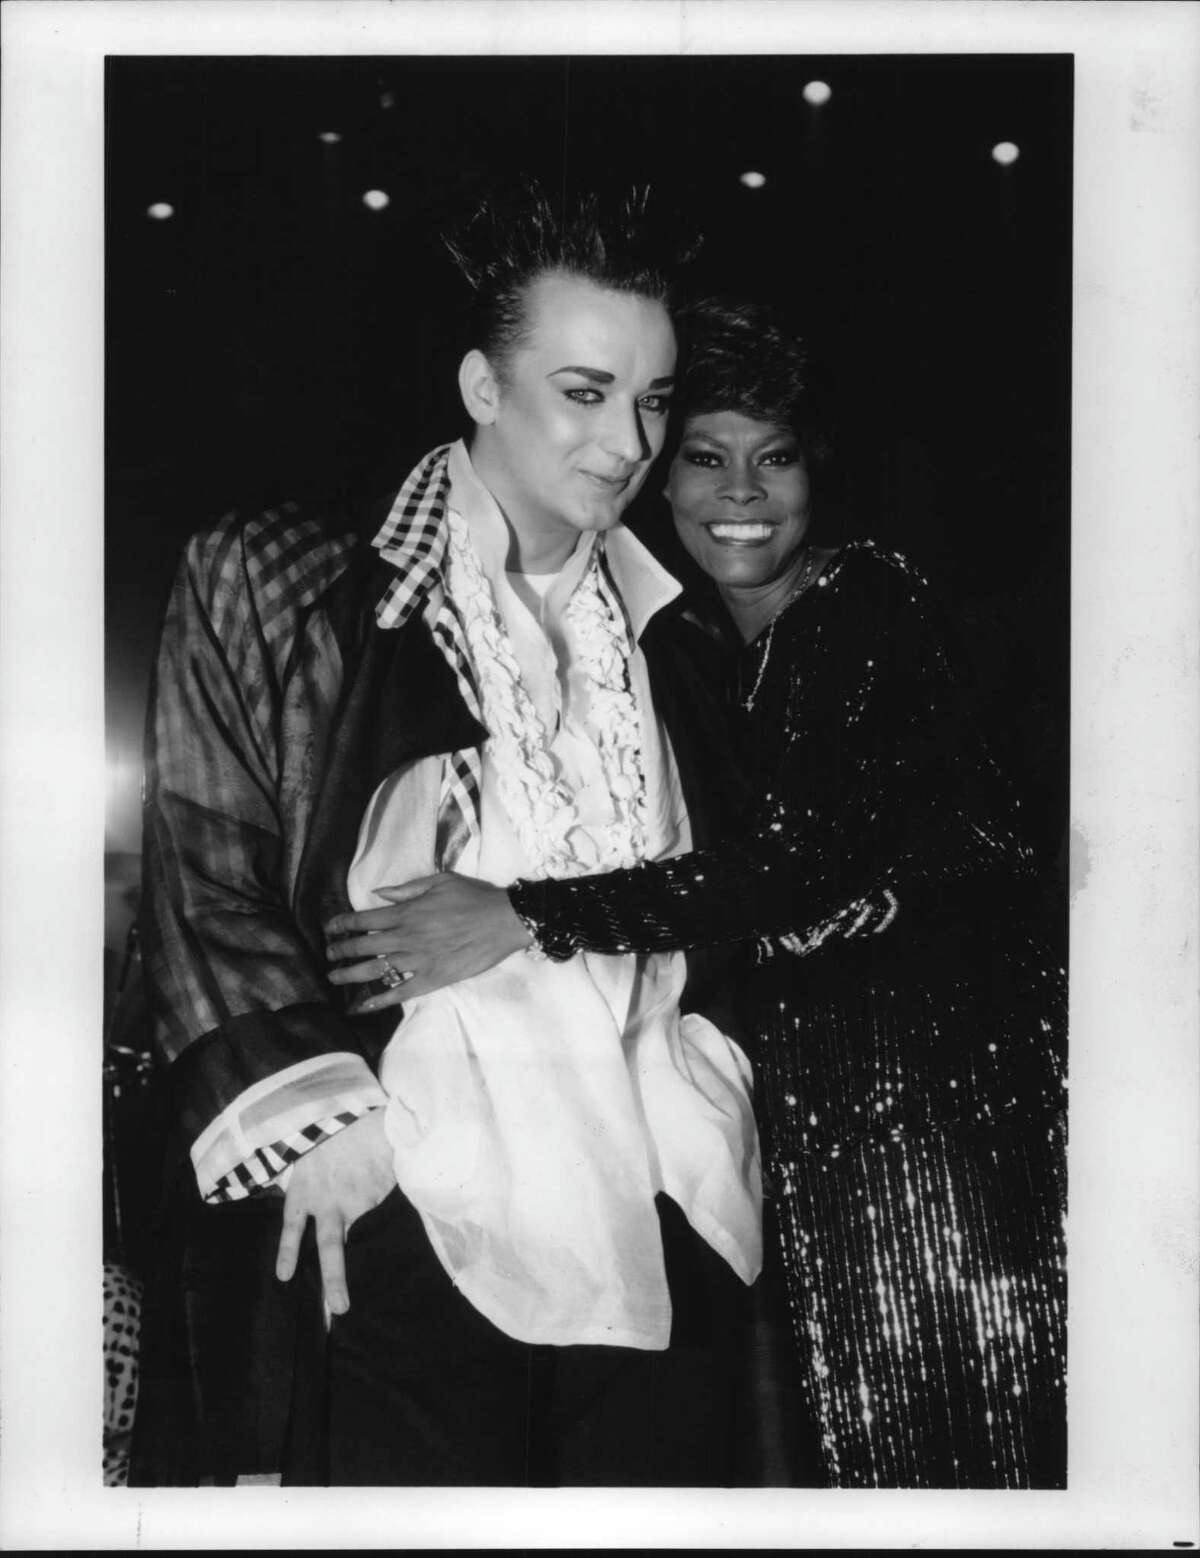 Culture Club's ever-unpredictable Boy George meets Dionne Warwick, new host of Paramount Domestic Television and Video Programming's